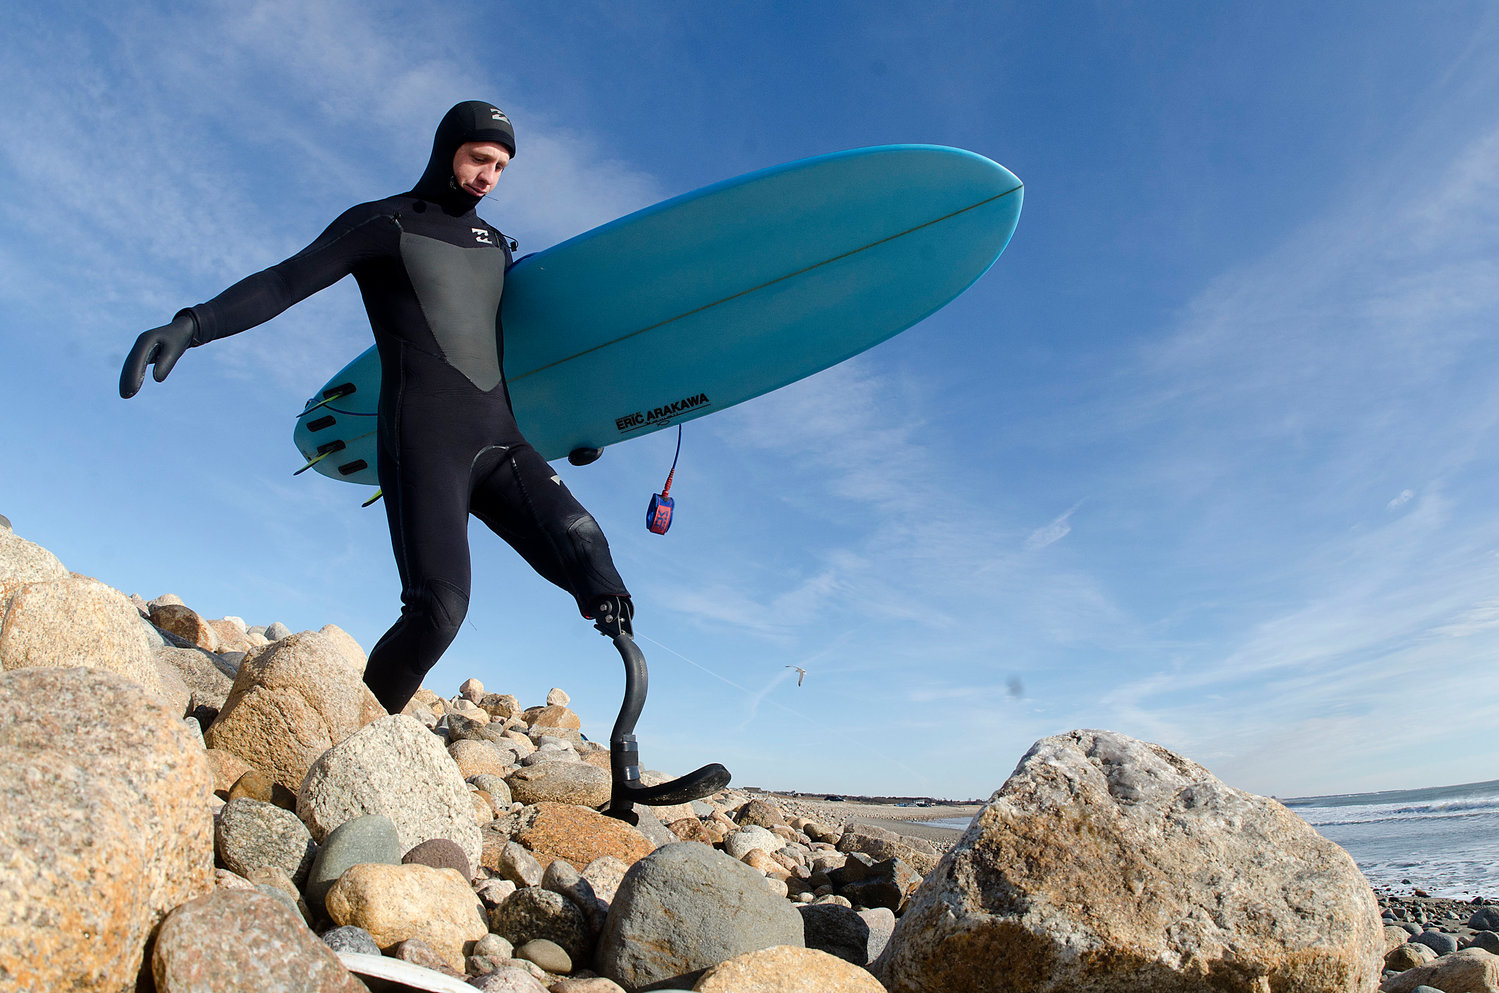 Colin Cook climbs down the rocks at Little Compton's South Shore Beach nearly two years after the shark attack that claimed part of his left leg. He's wearing an early-version carbon fiber limb designed and built for him by Sakonnet area friends especially for use while surfing.